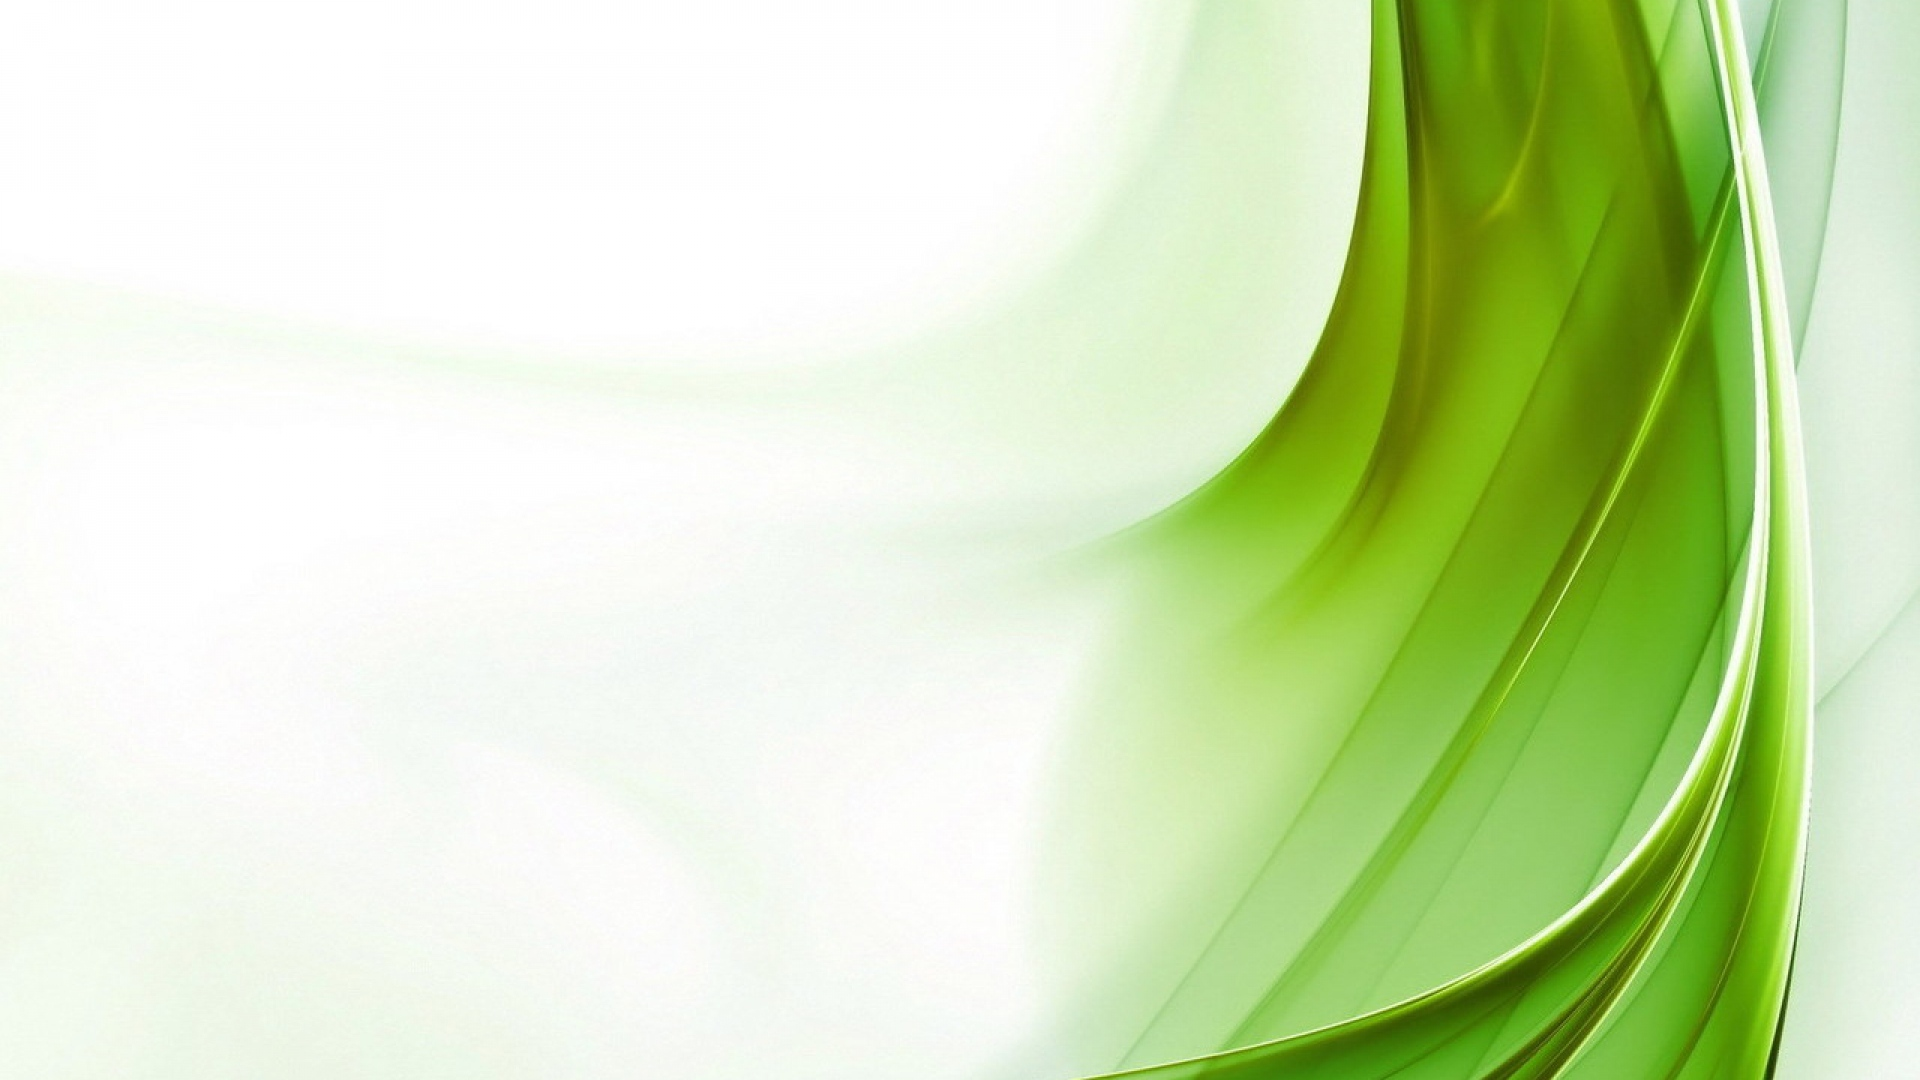 White hd wallpapers 1080p wallpapersafari for Green and white wallpaper